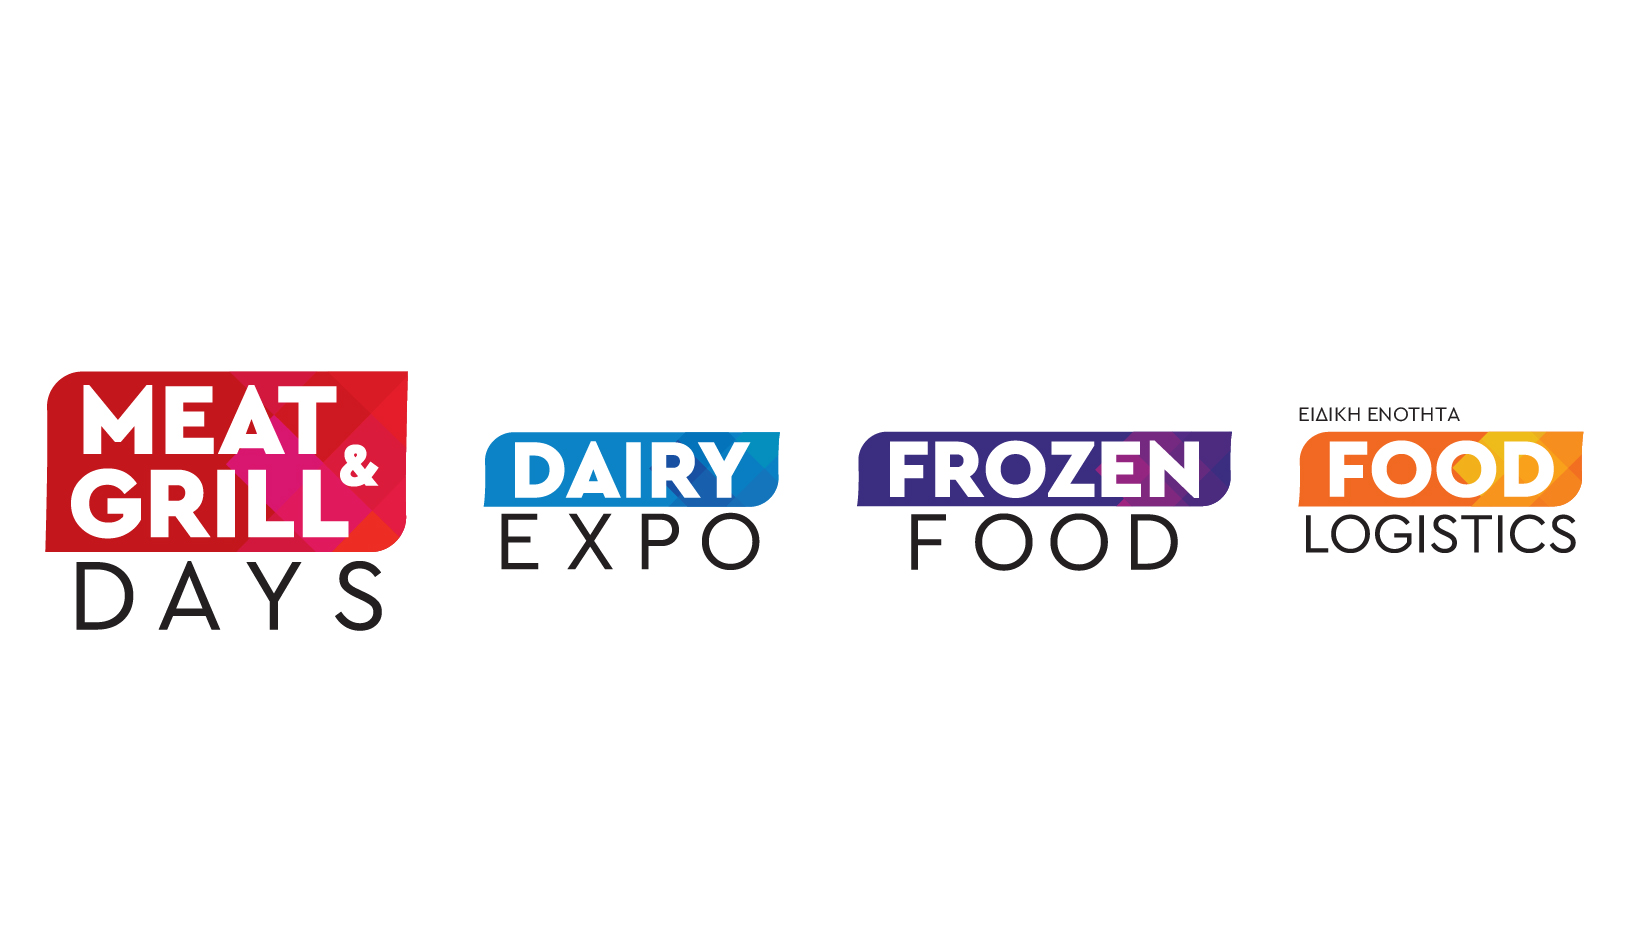 MEAT & GRILL DAYS - DAIRY EXPO - FROZEN FOOD 2020